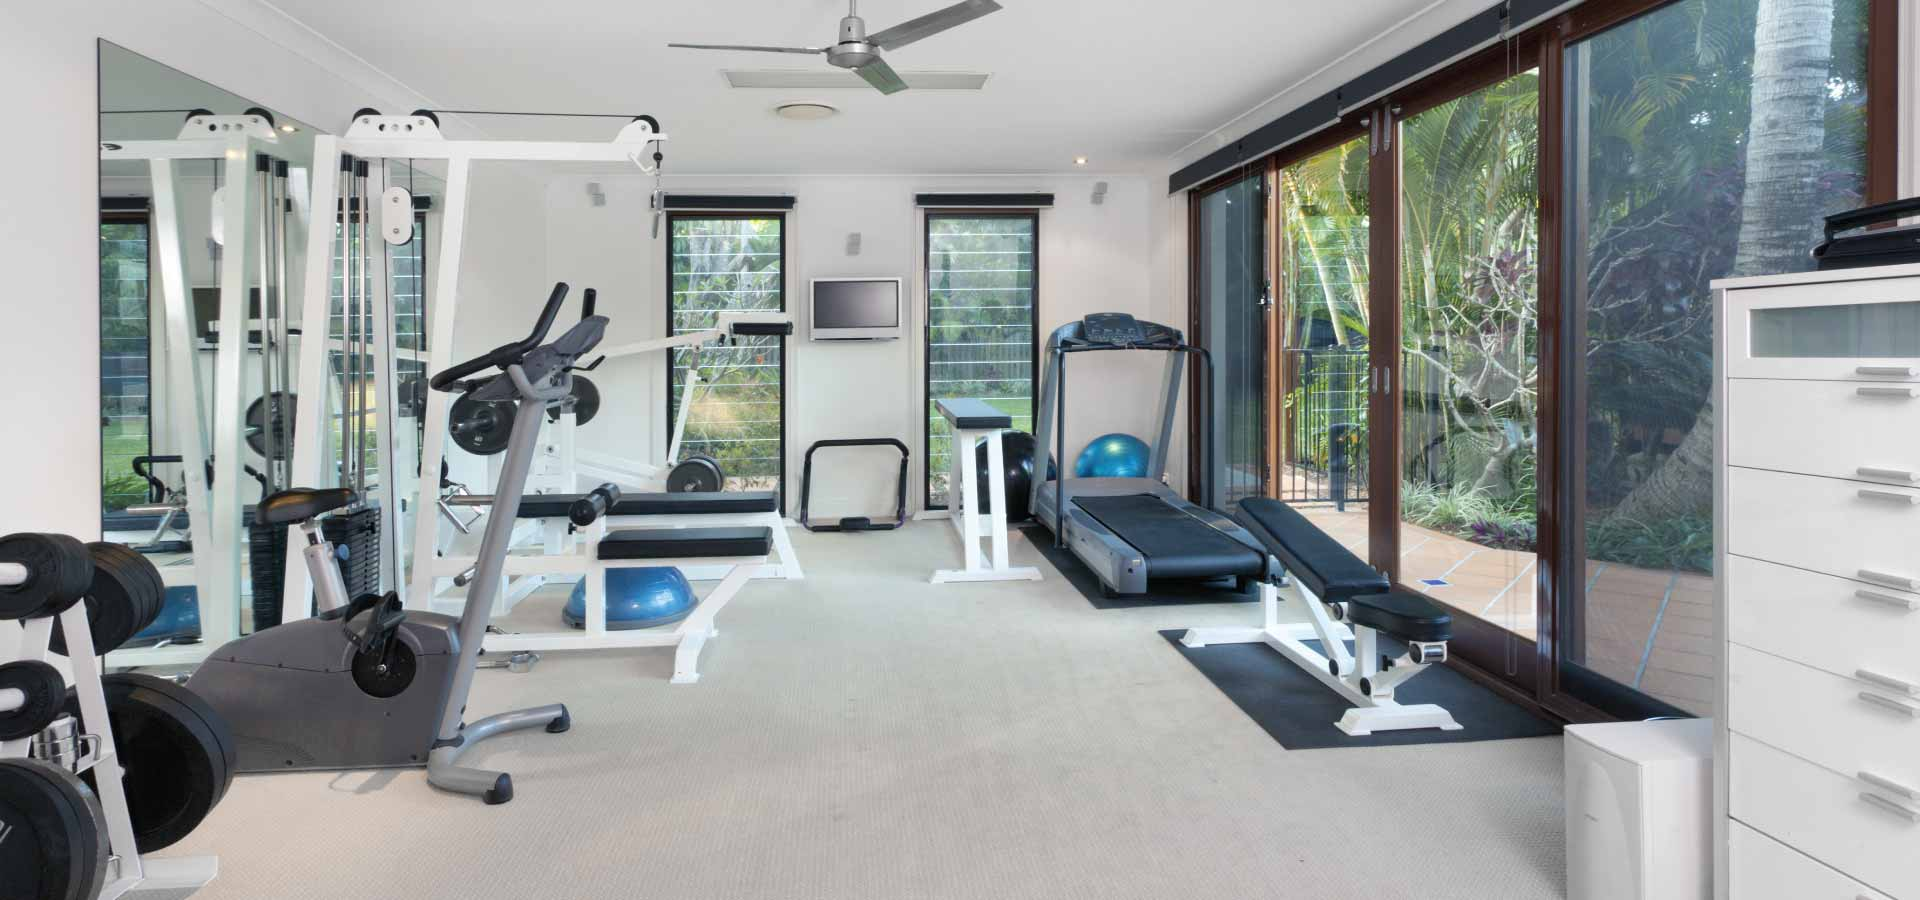 Gym Fit Kit - Home Gym Reviews